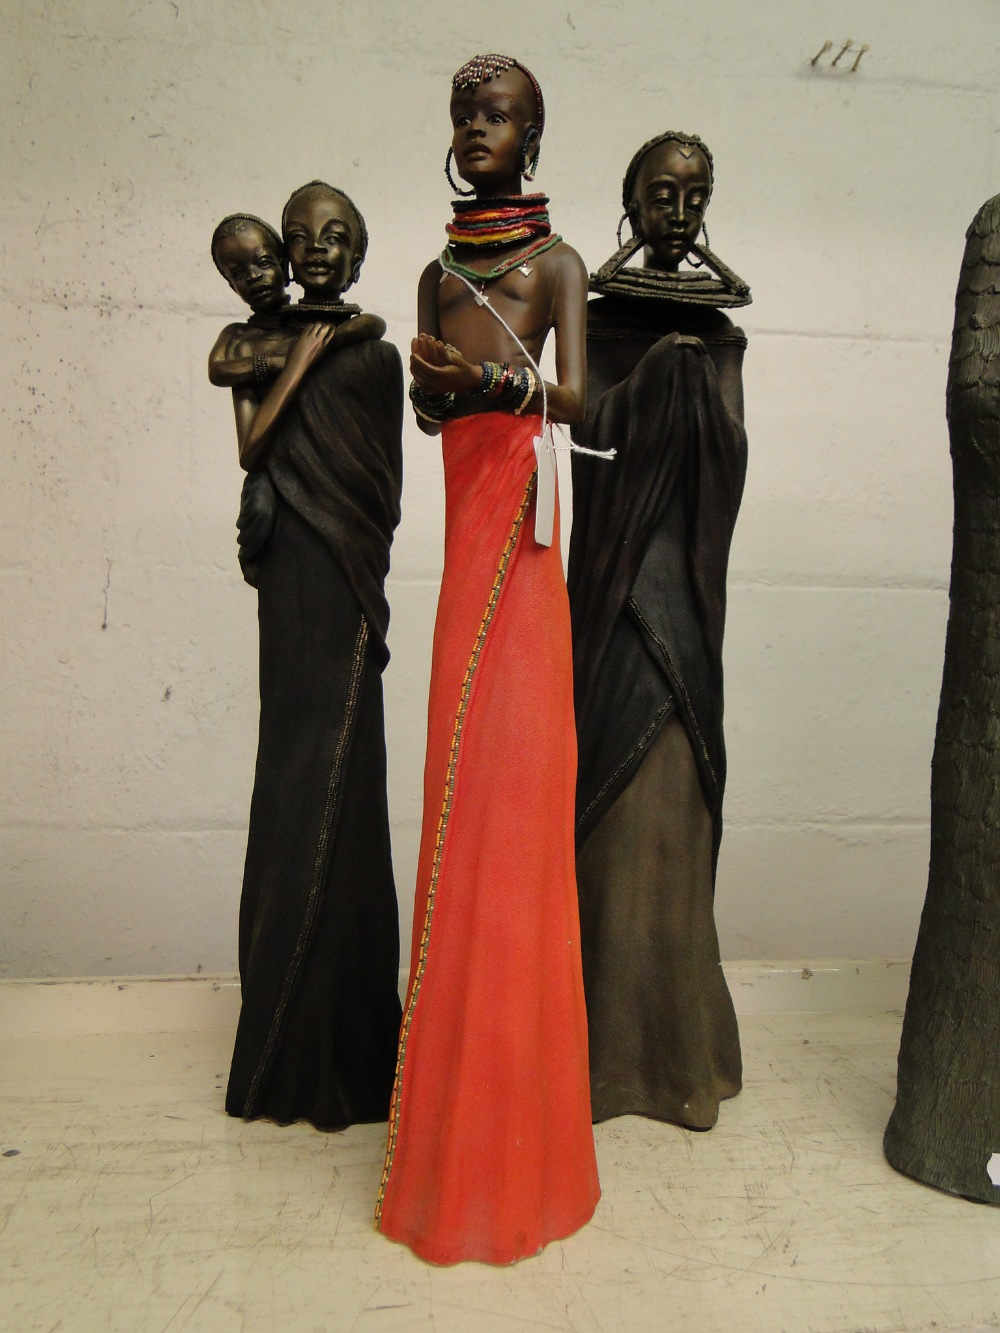 Lot 473 - 3 Soul Journeys Maasai figures